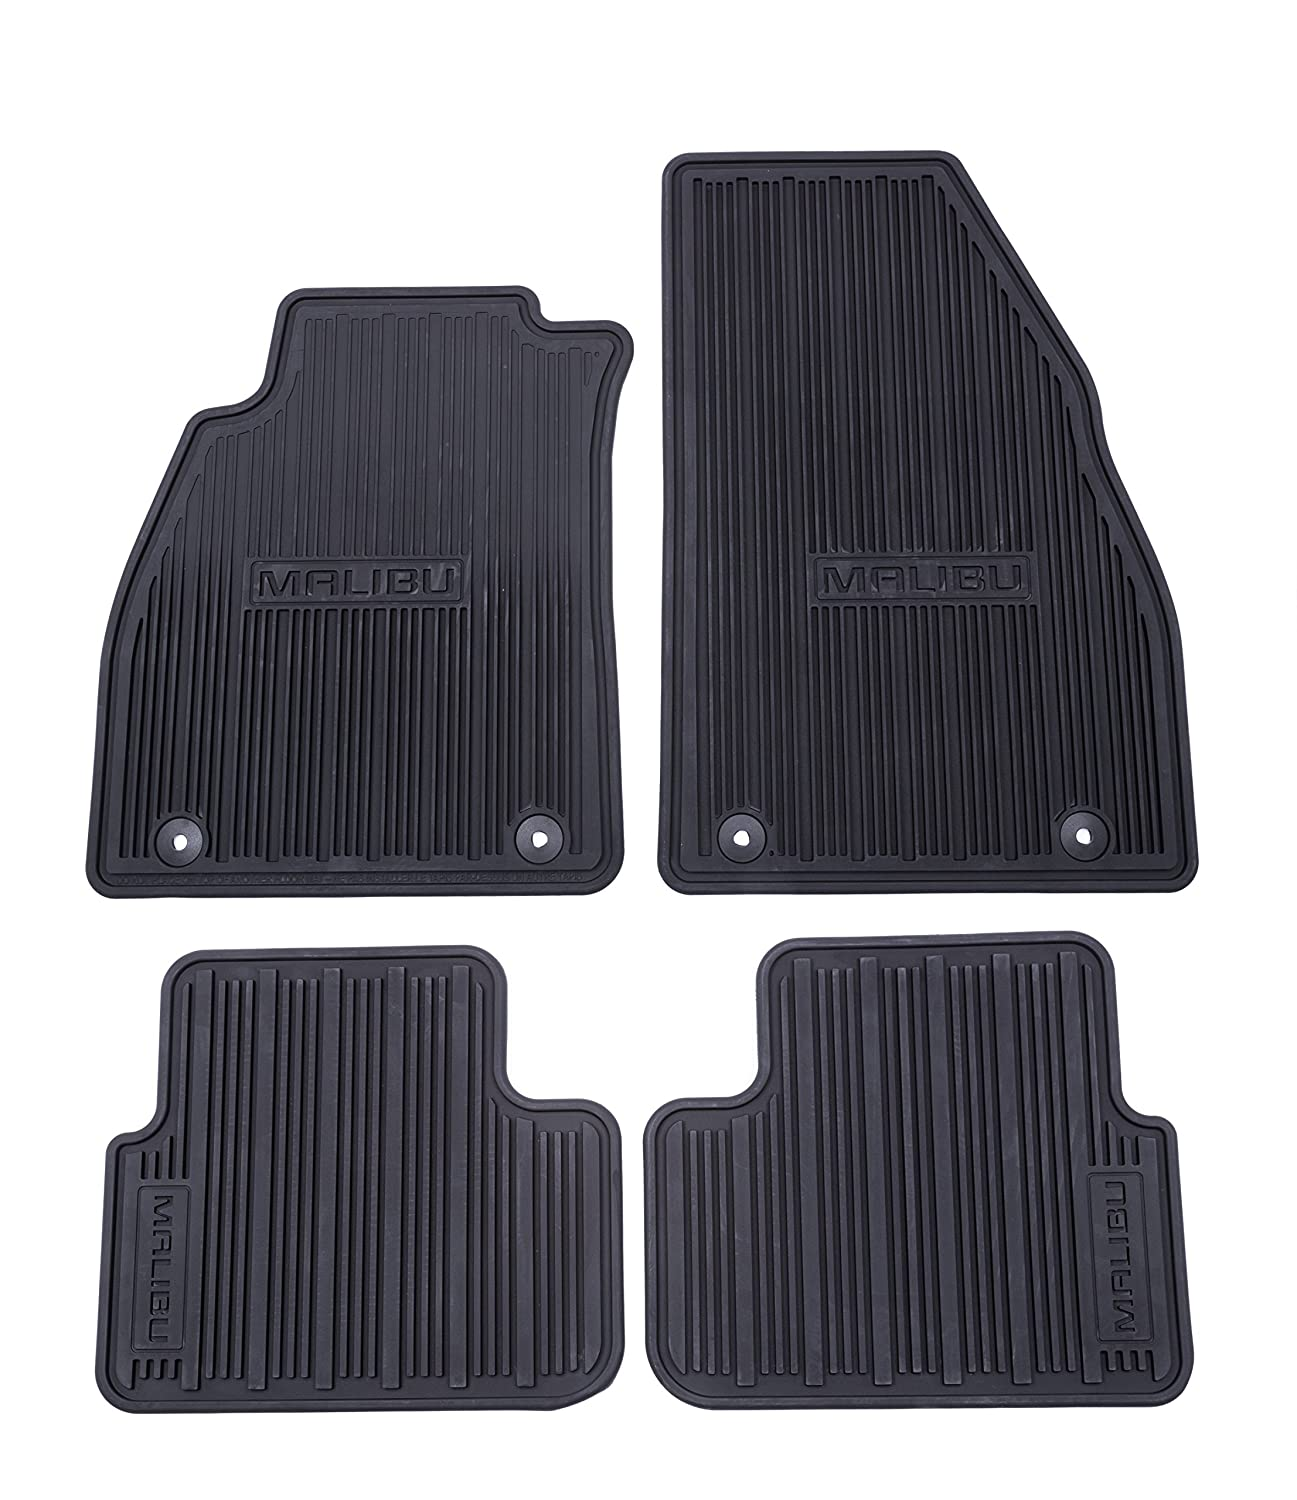 salecar custom car rubber mats used from for best cheap auto walmart image design floor wonderful